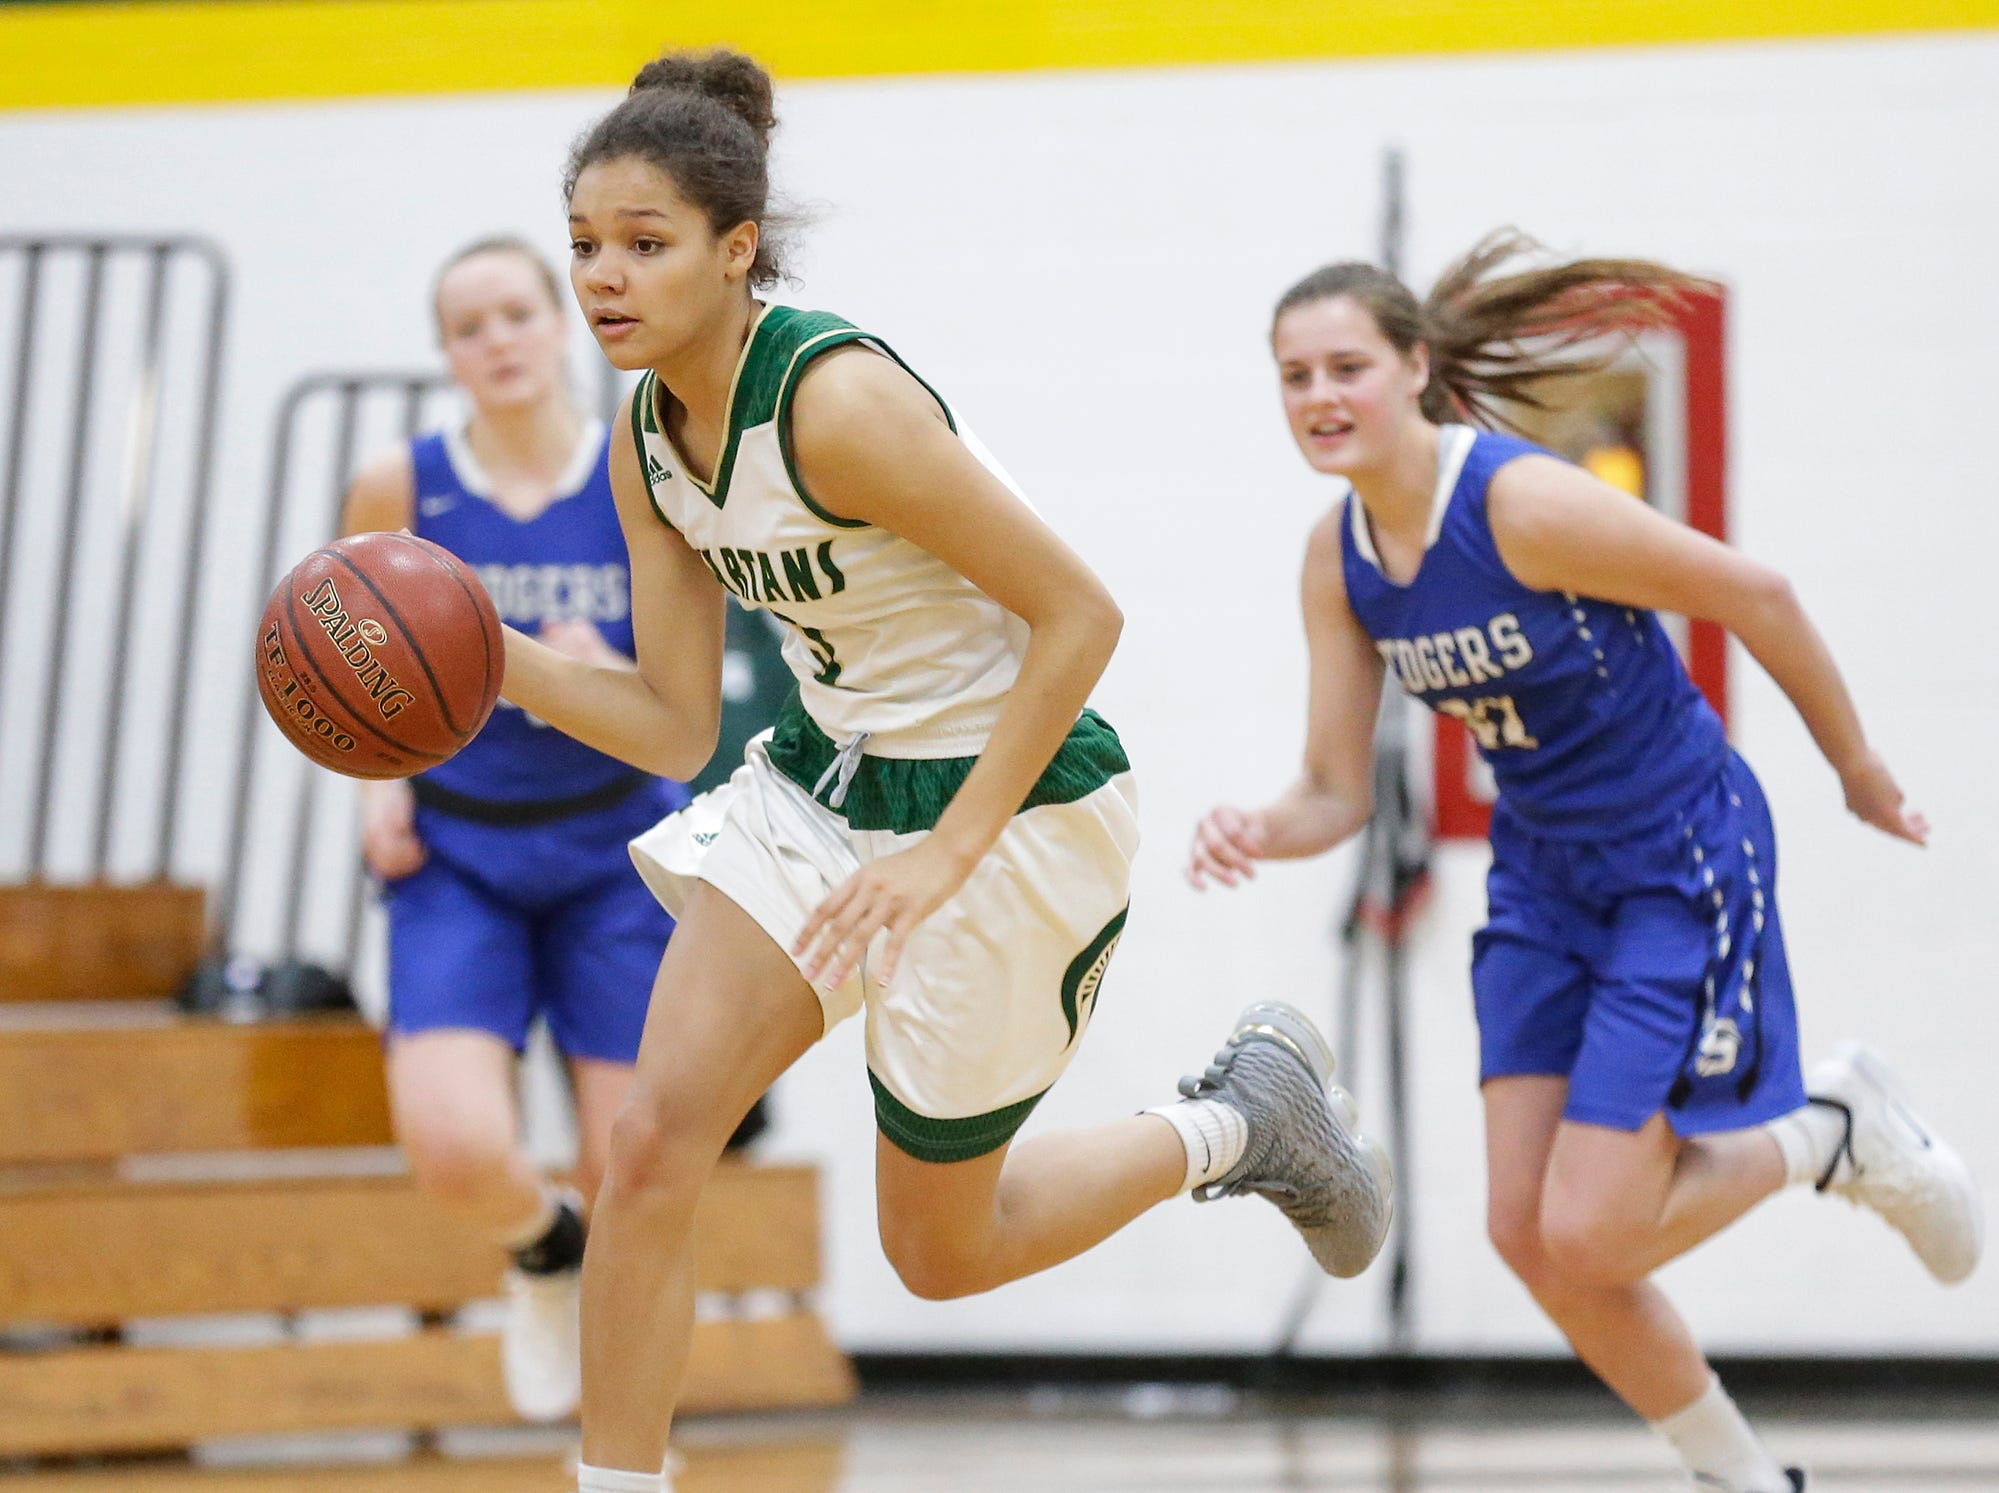 Laconia High School girls basketball's Kiarra Otto runs down court with the ball against St. Mary's Springs Academy Tuesday, January 15, 2019 during their game in Rosendale. Laconia won the game 57-45. Doug Raflik/USA TODAY NETWORK-Wisconsin